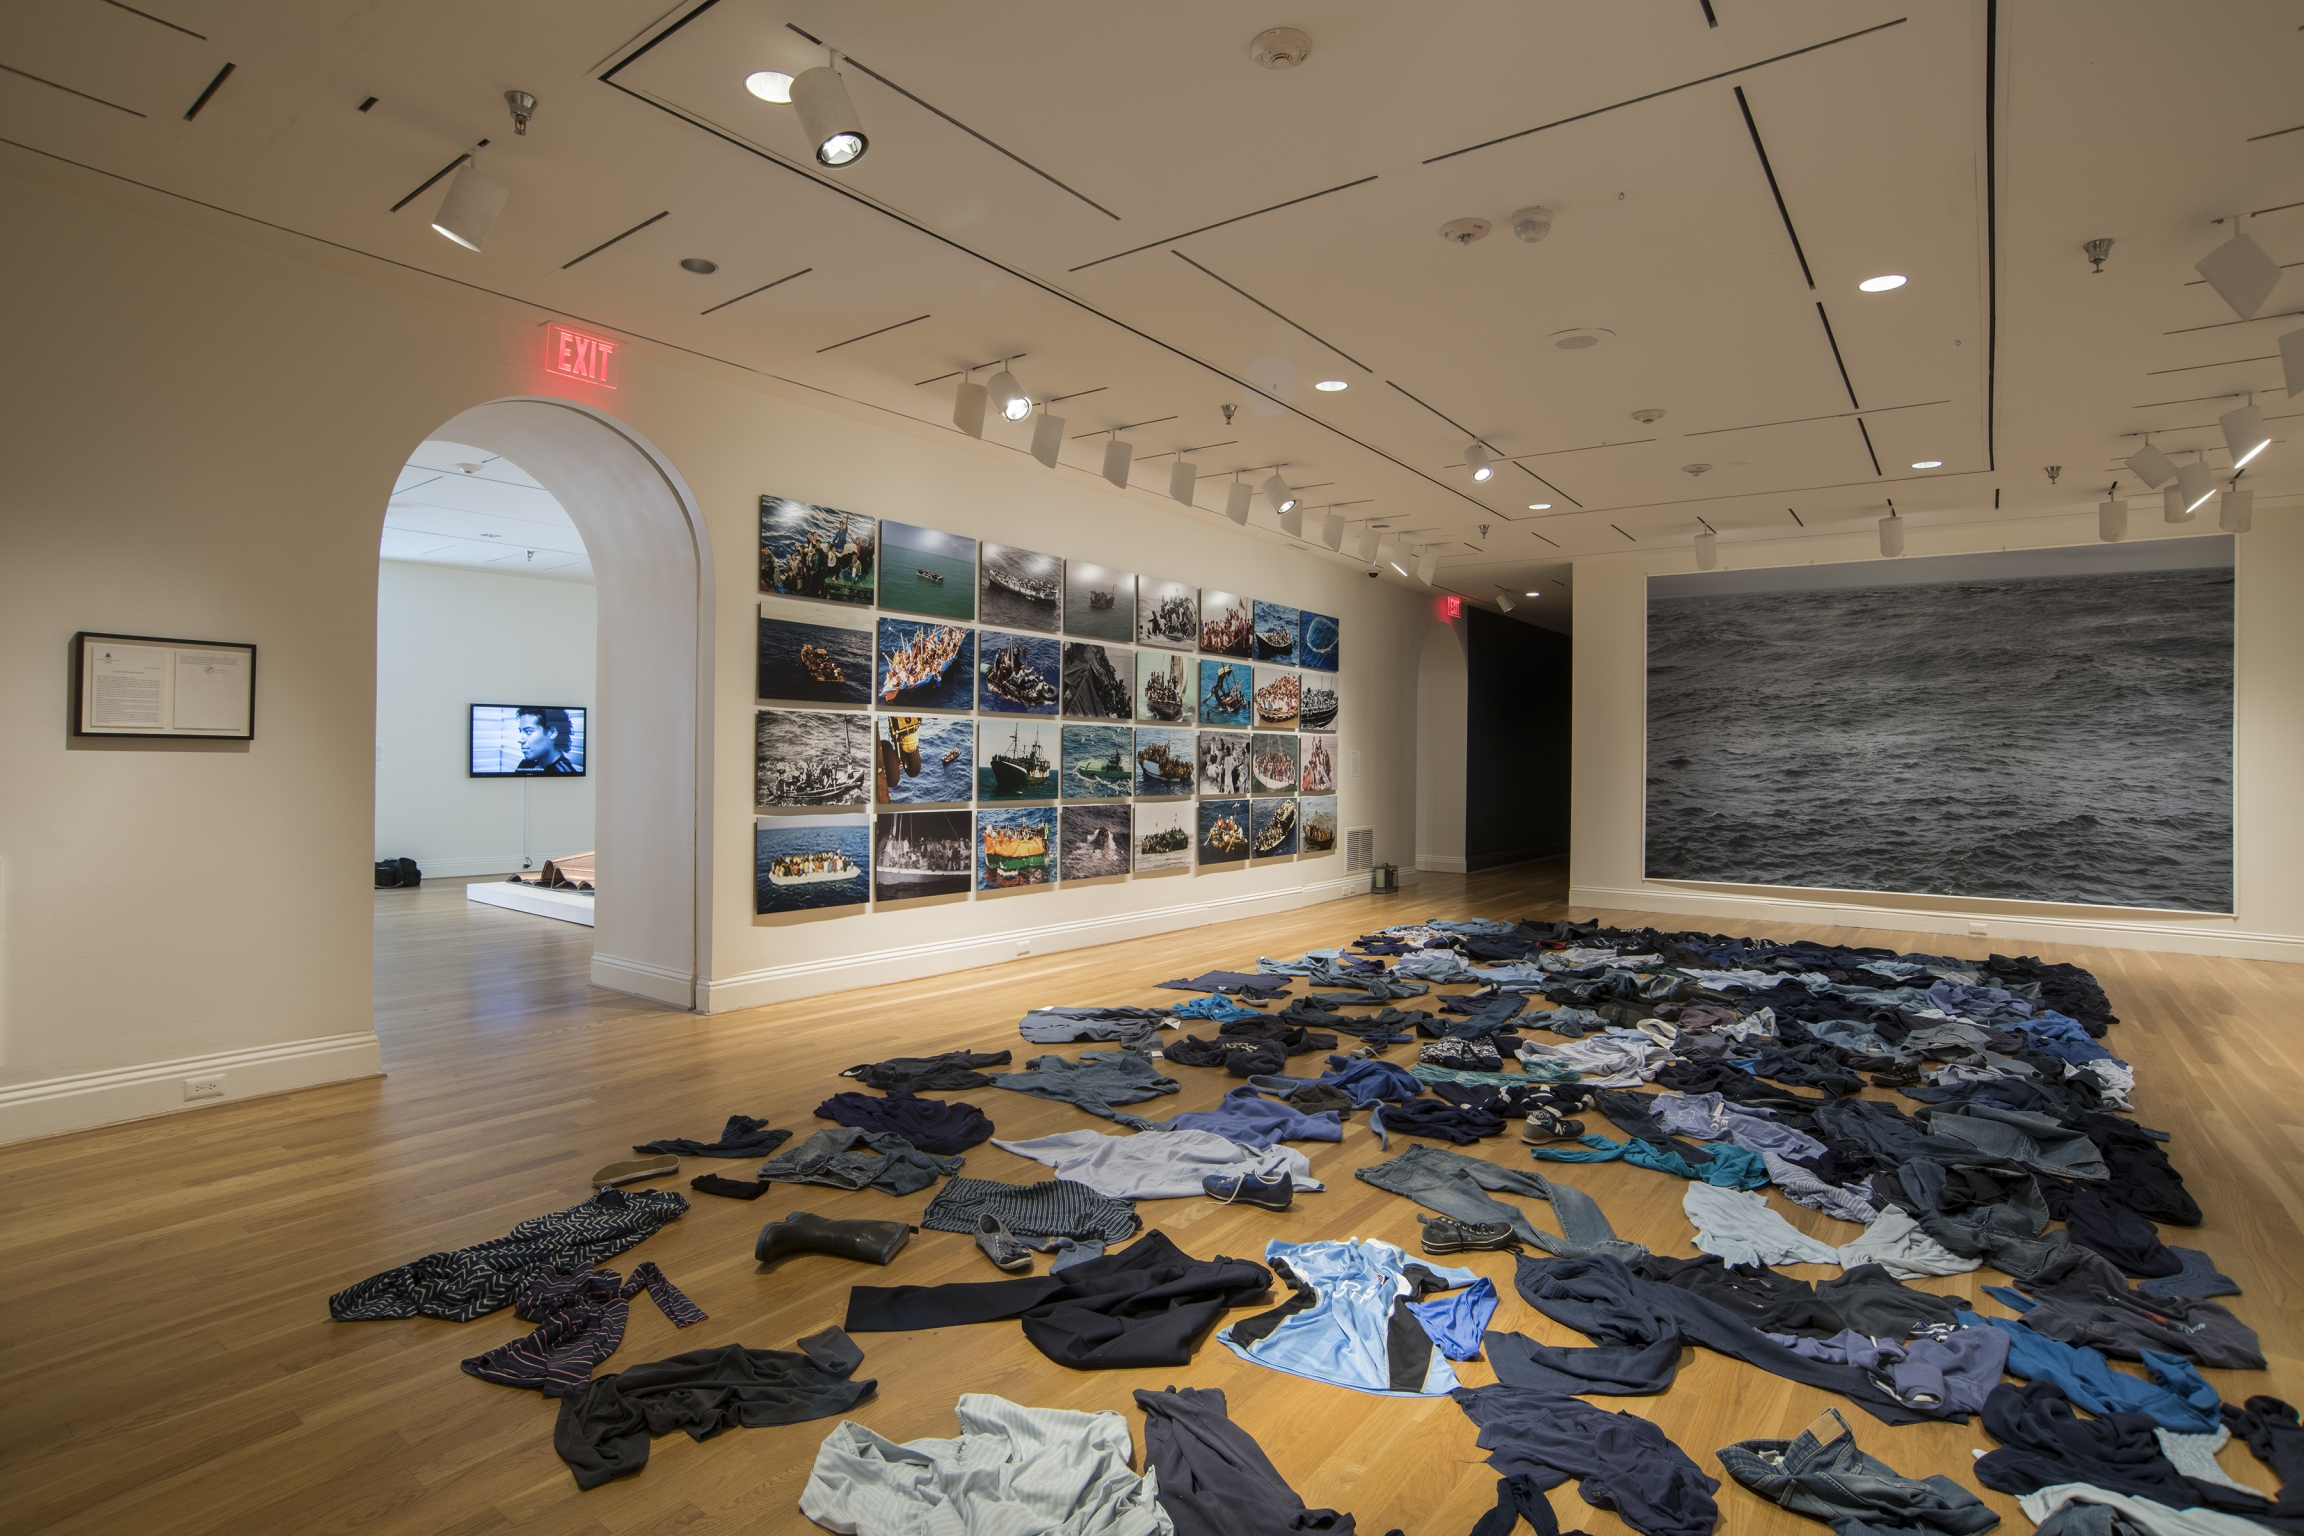 Dark colored clothes are strewn on the floor in an art exhibition.